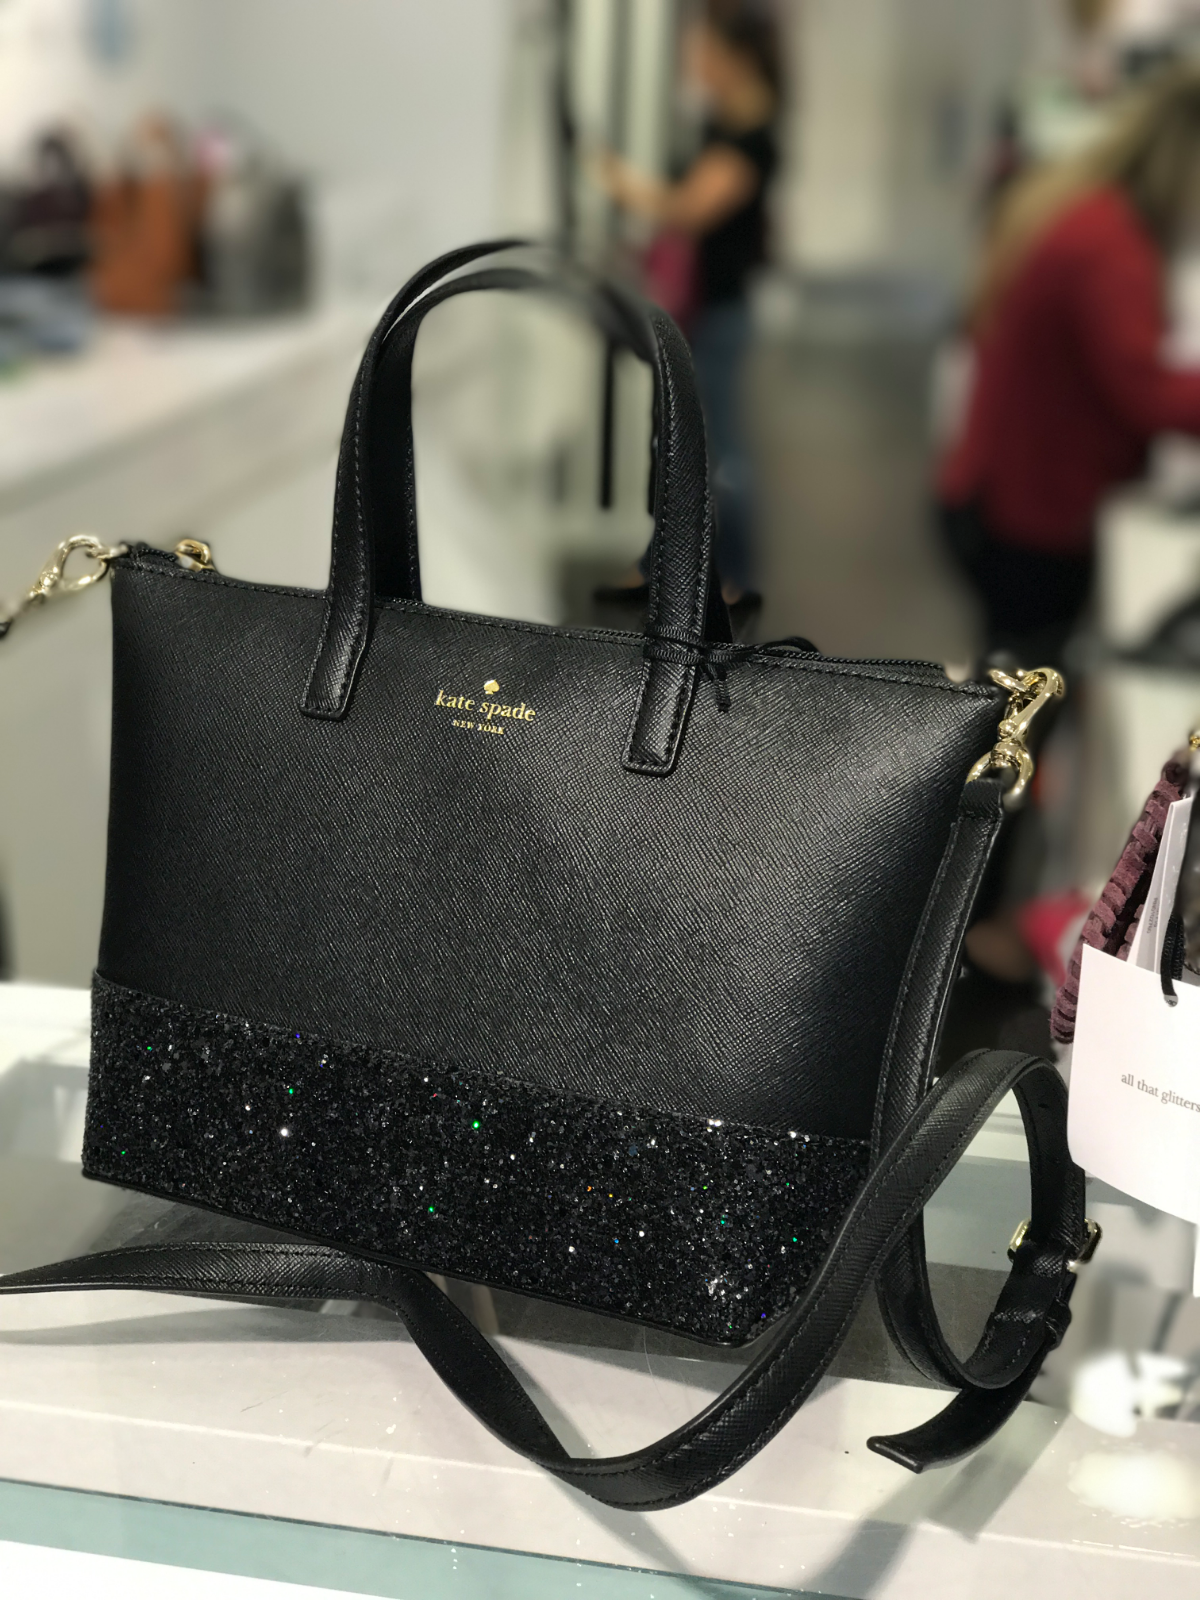 b9dd996db2a3 Details about NWT Kate Spade Greta Court Ina Black Glitter Crossbody ...